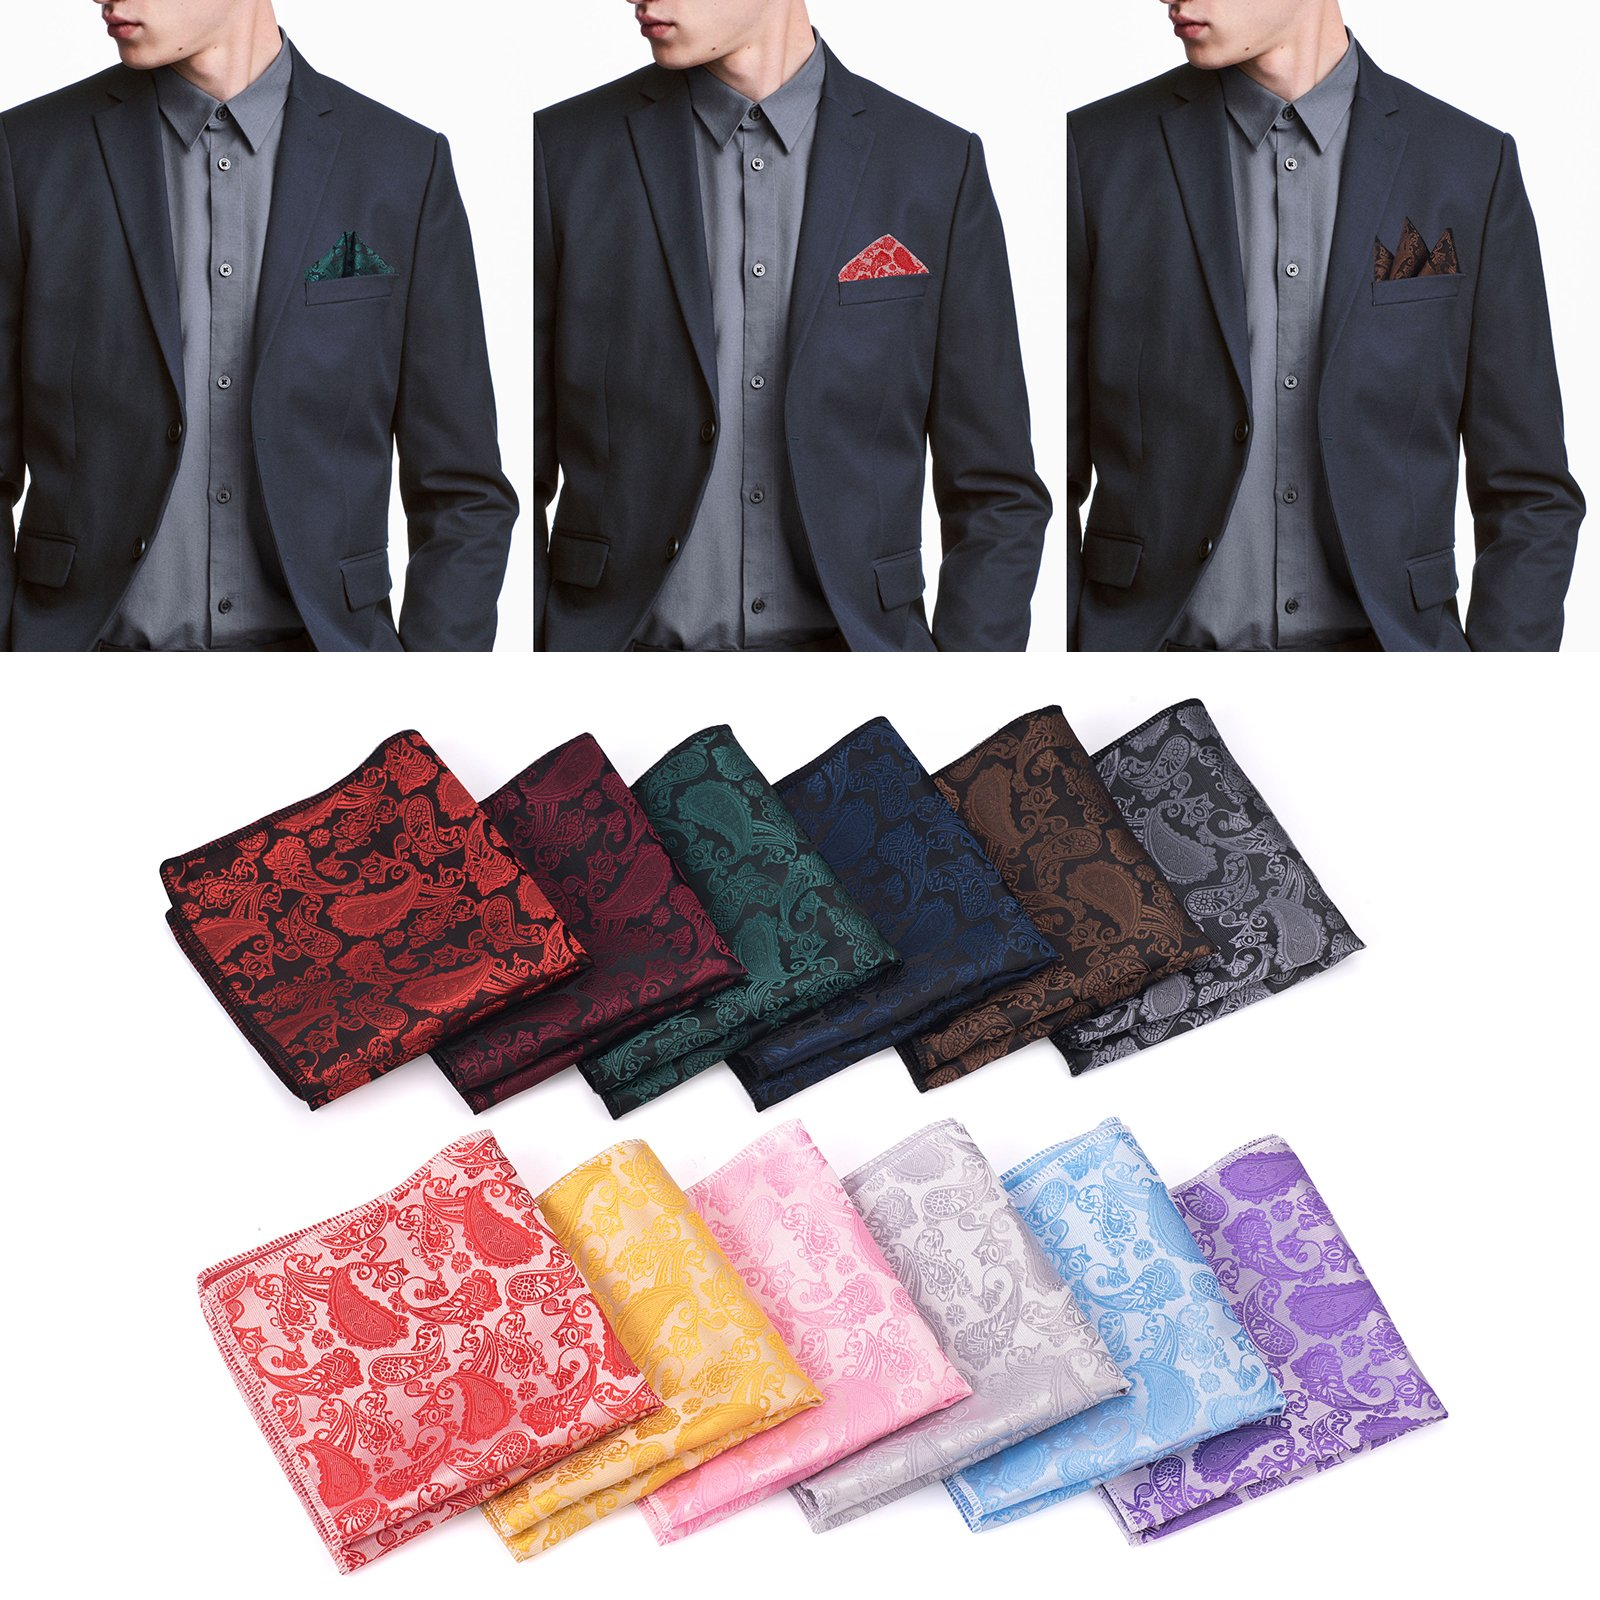 12 PCS Mens Square Handkerchief Printing patterns Pocket for Wedding Party(Pack of 12) by DanDiao (Image #2)